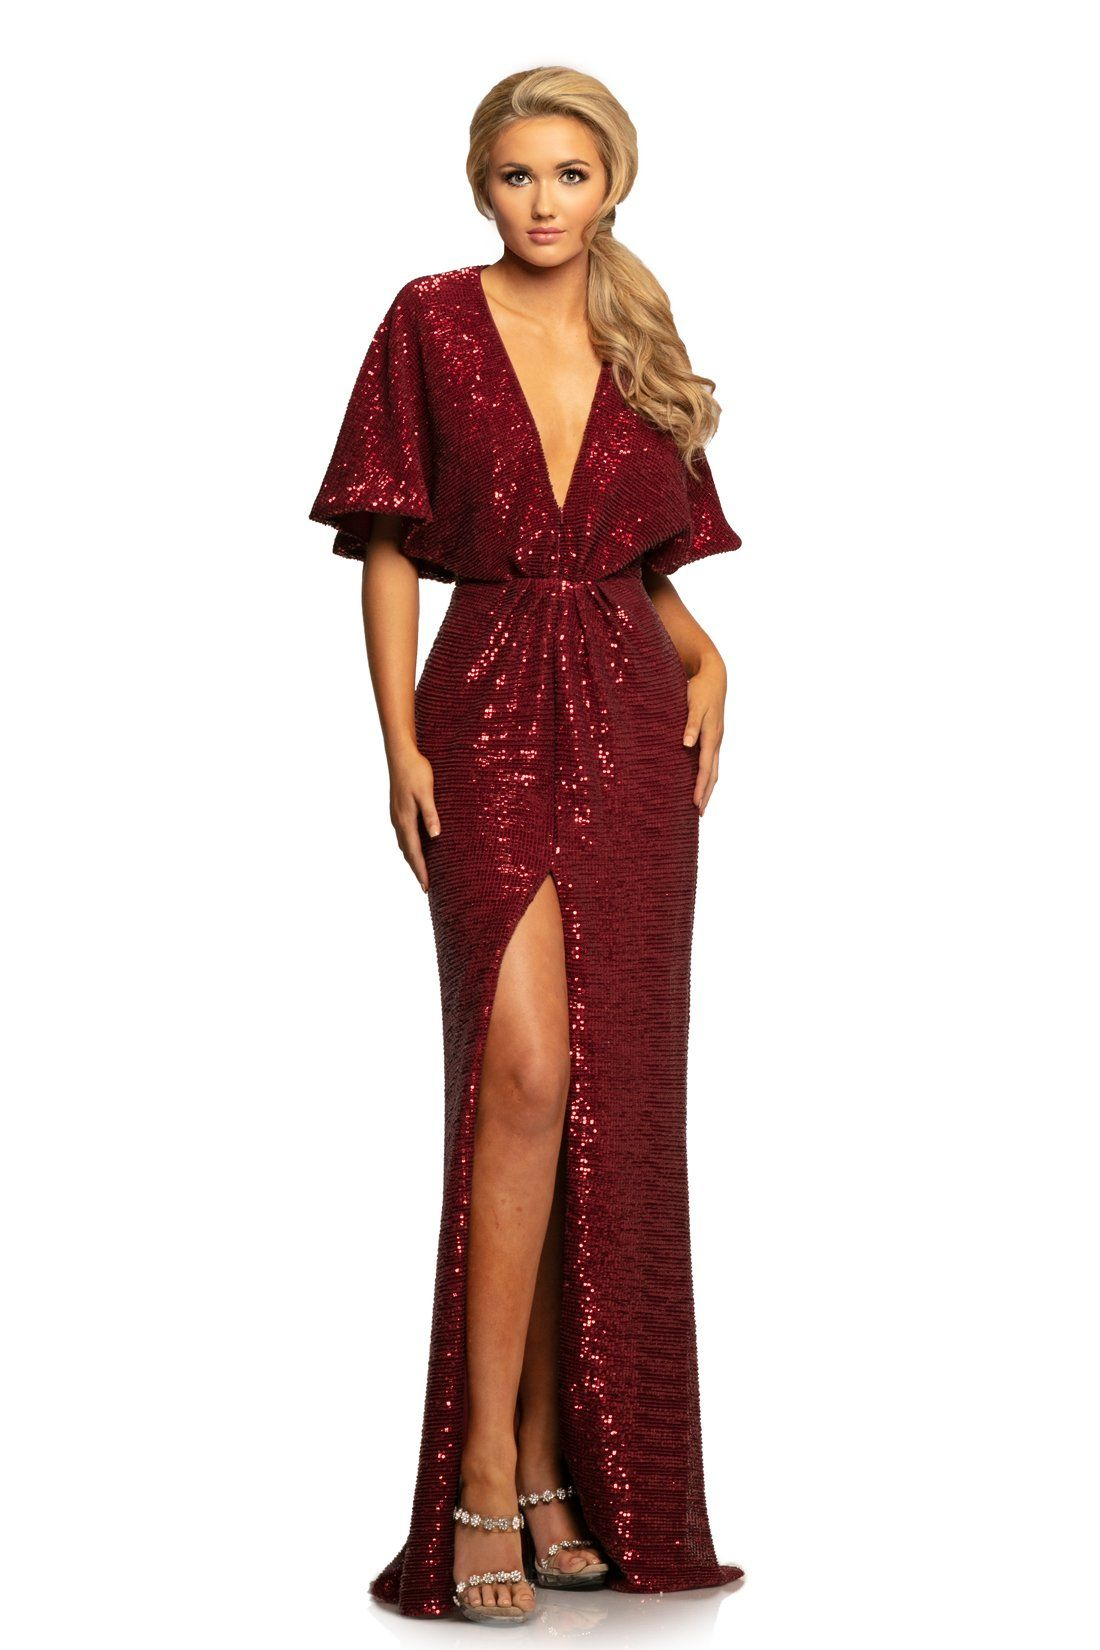 Johnathan Kayne 2015 Plunging V Neck Kimono Sleeves Sequins Gown In 2020 Evening Gowns Wedding Evening Gown Wedding Dress Sequin